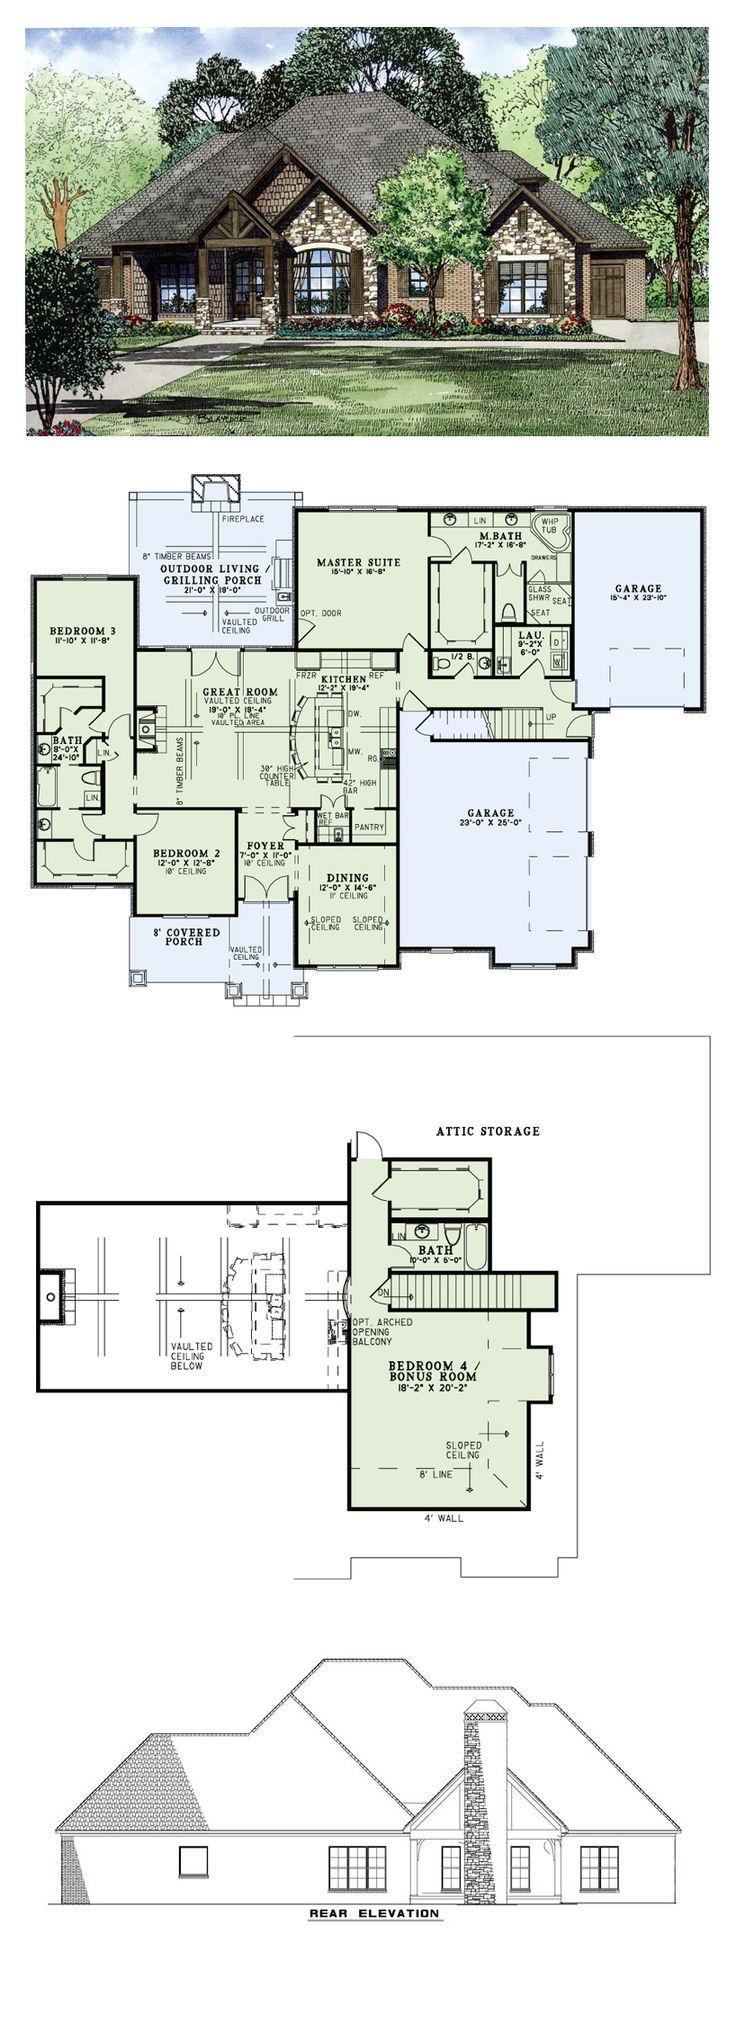 17 best ideas about garage converted bedrooms on pinterest for House plans for extended family